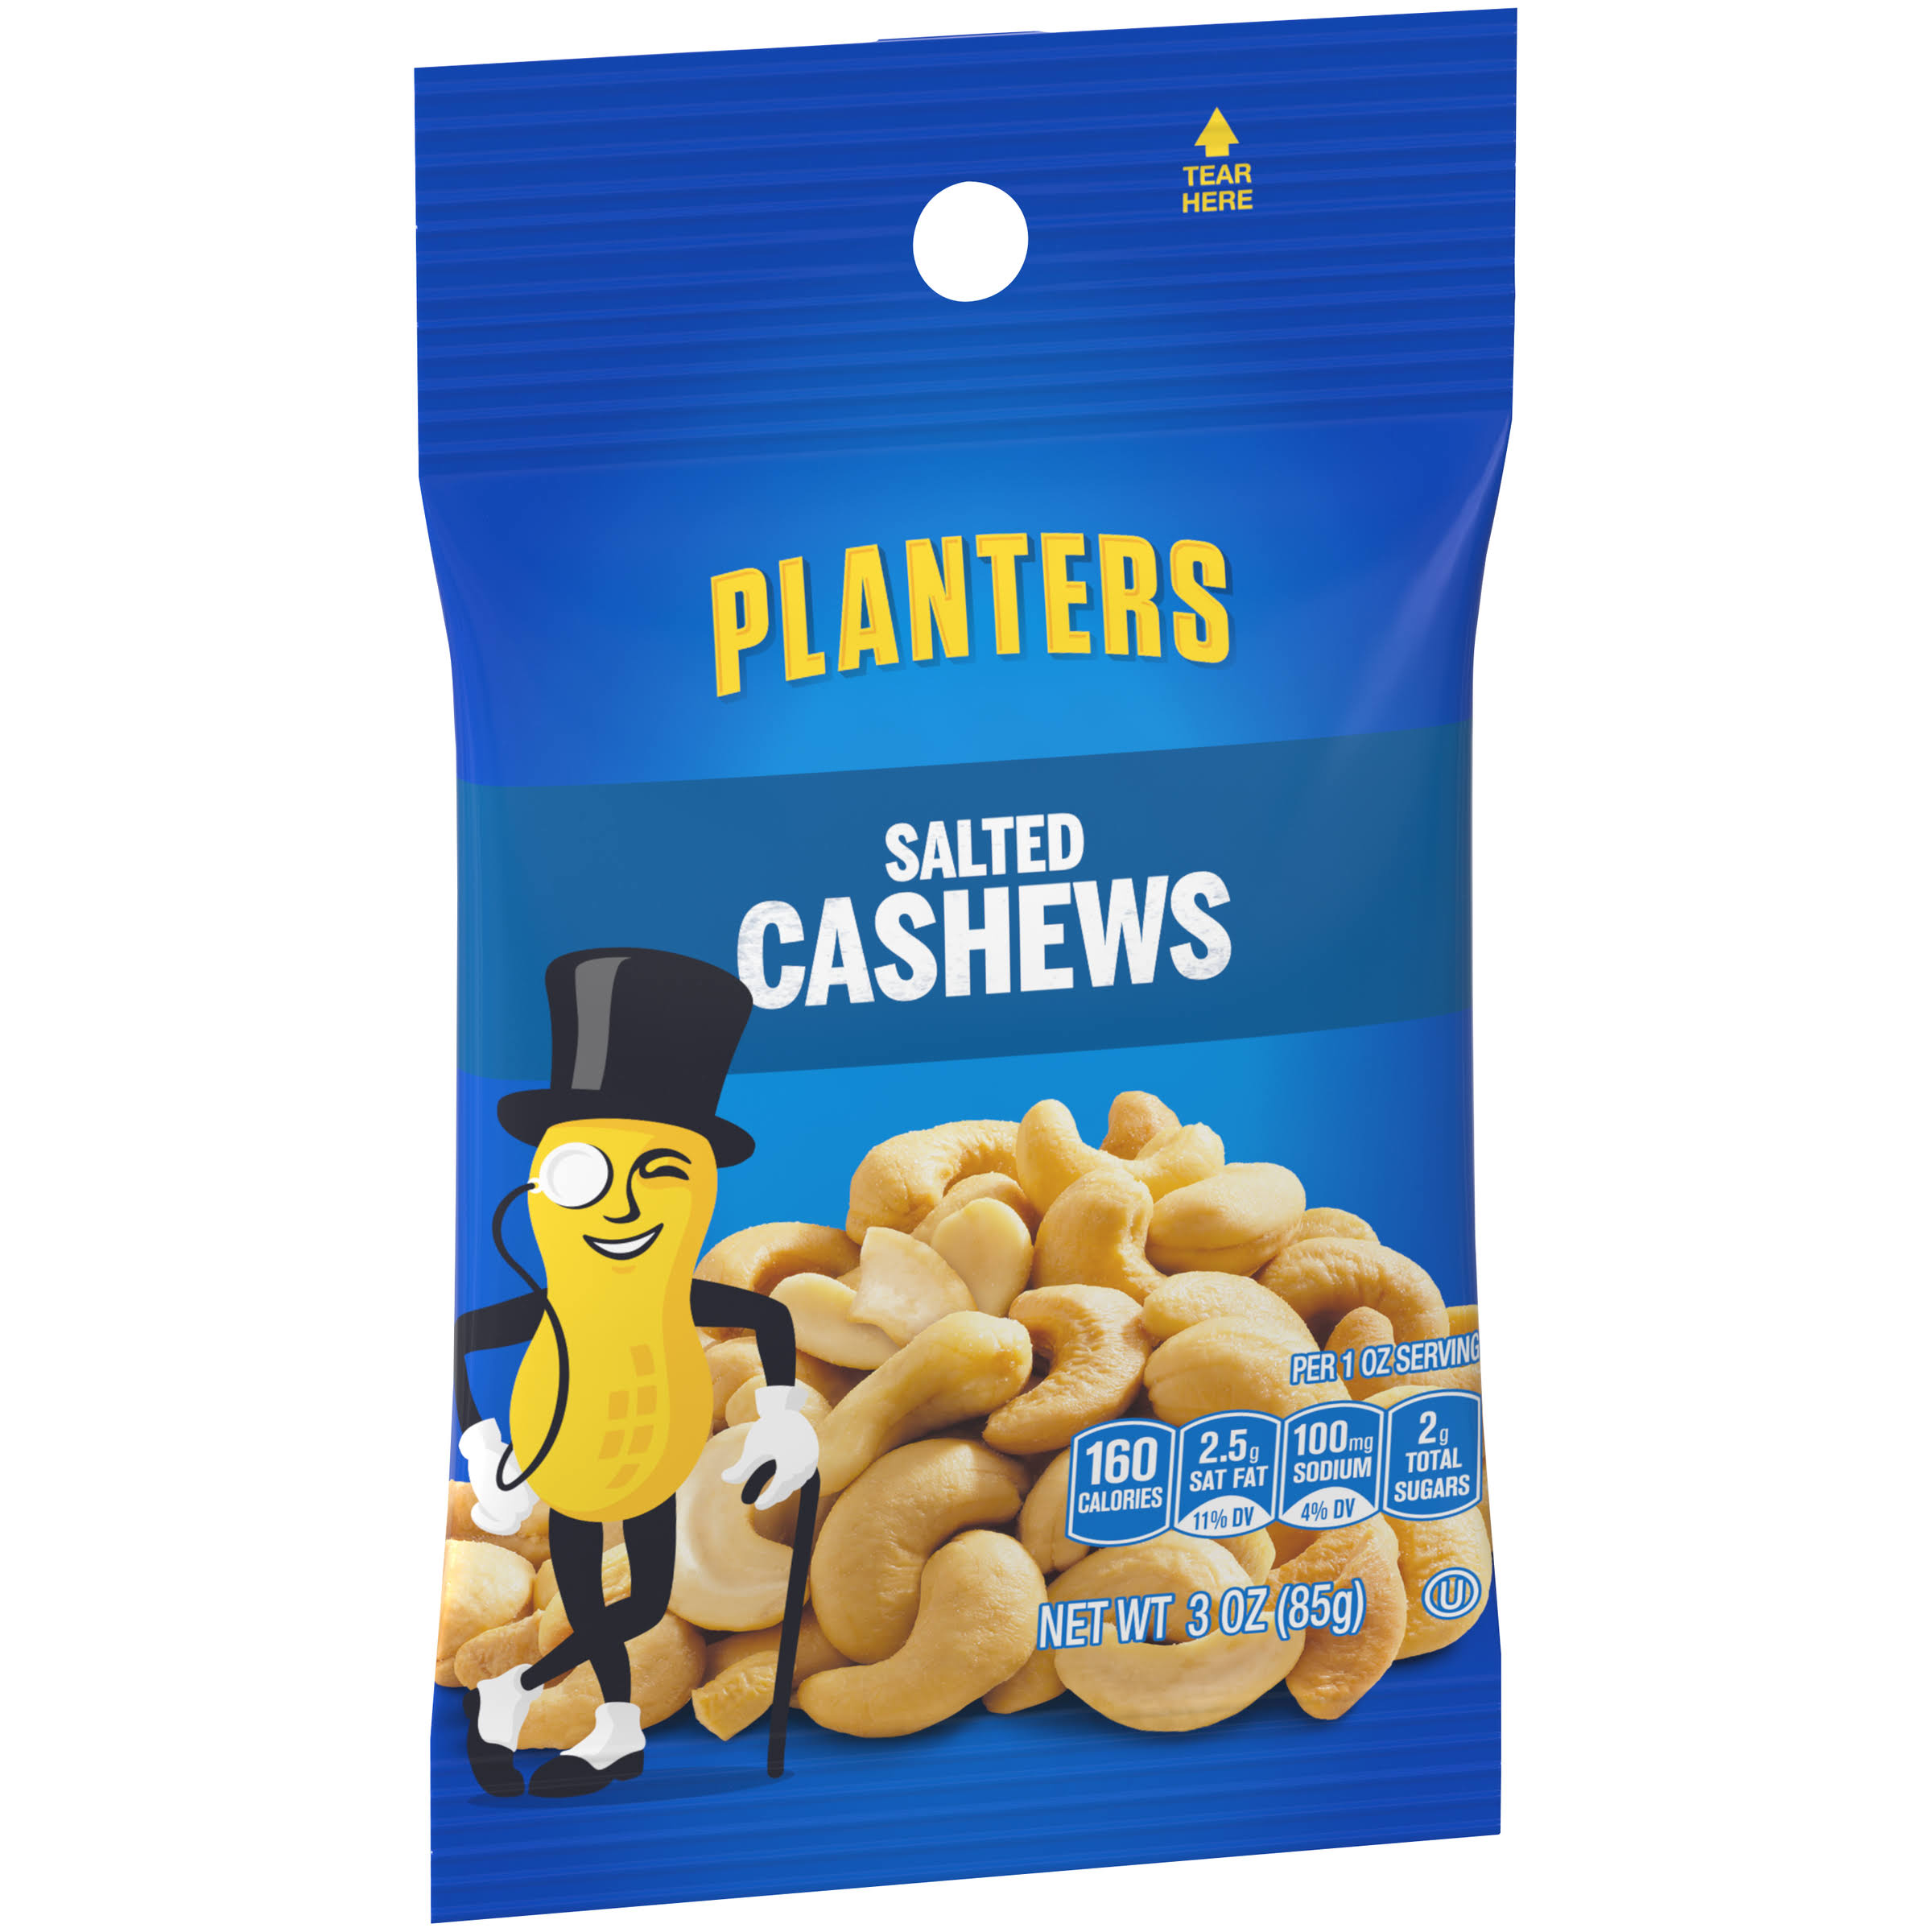 Planters Salted Cashews - 3oz